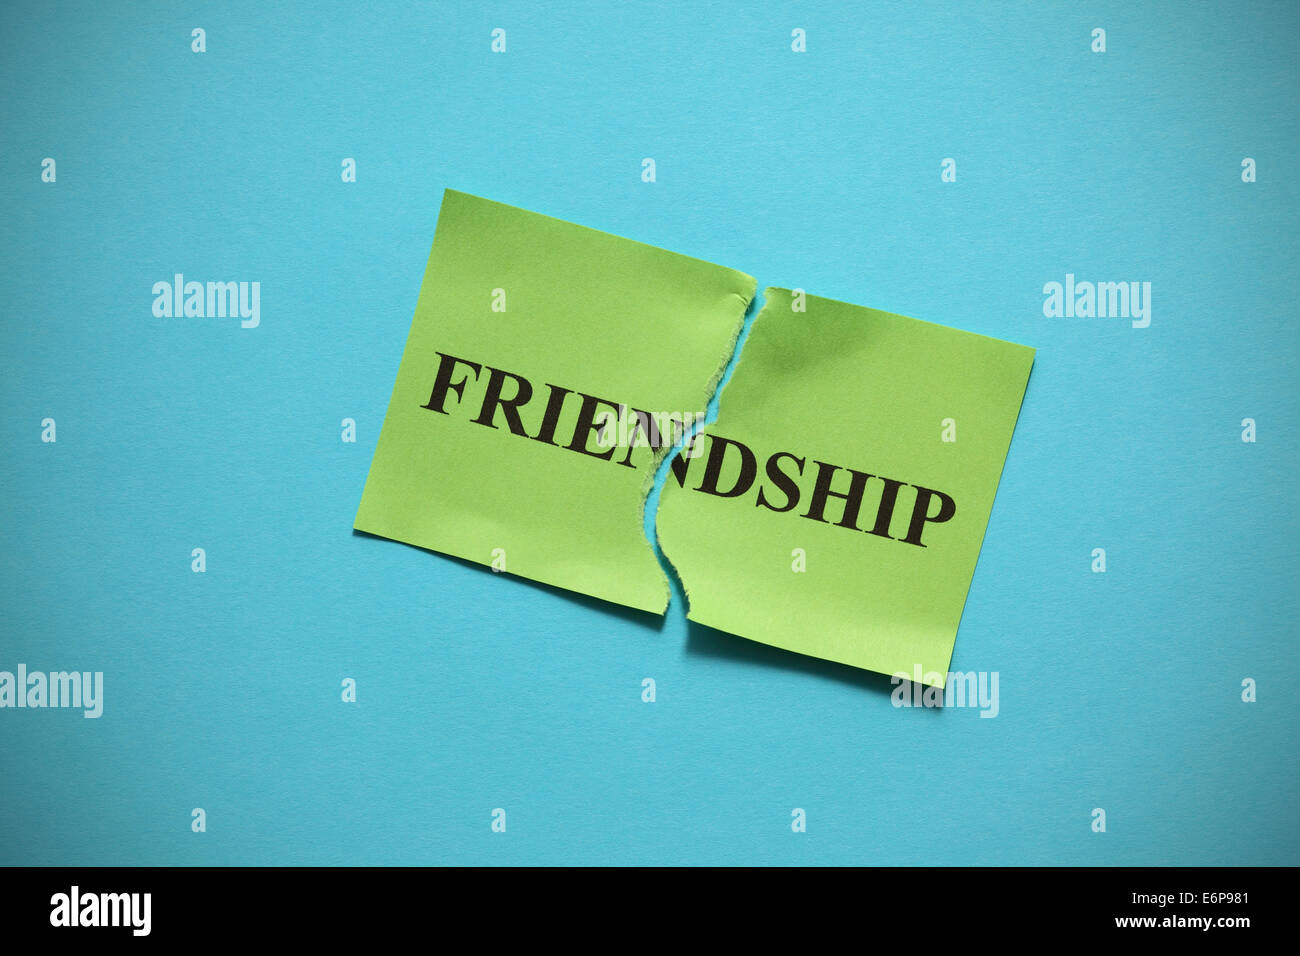 Friendship breakdown (destroy a friendship). Torn of paper with the word 'Friendship'. Concept Image. - Stock Image